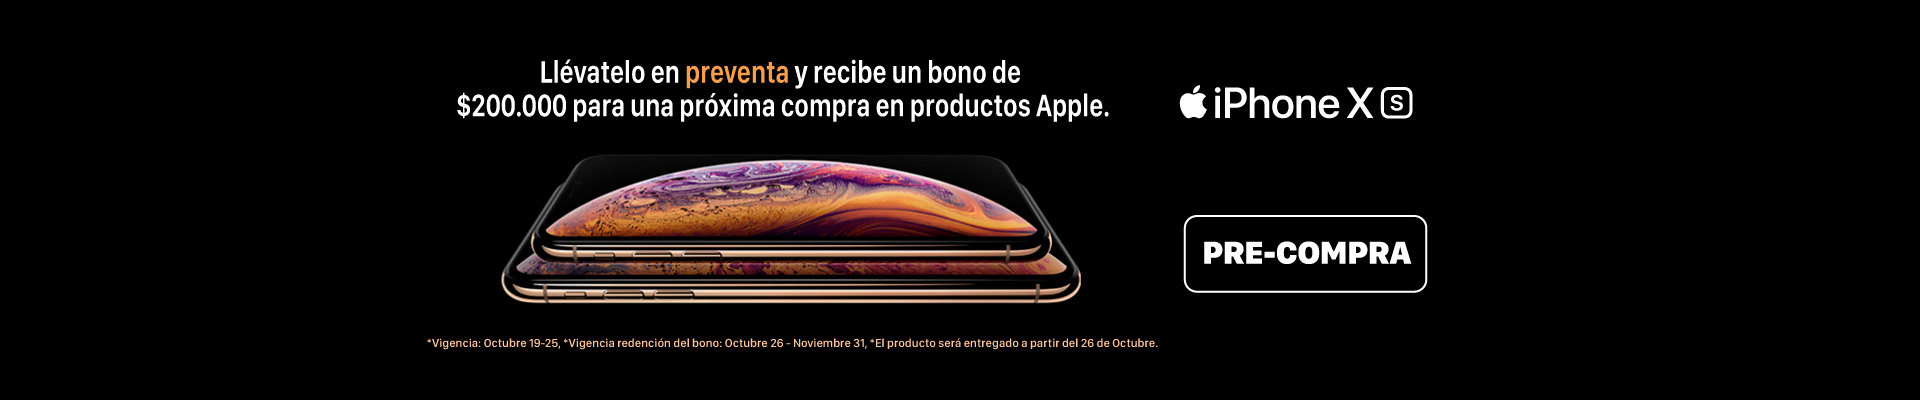 BP ALKP  IPHONE XS